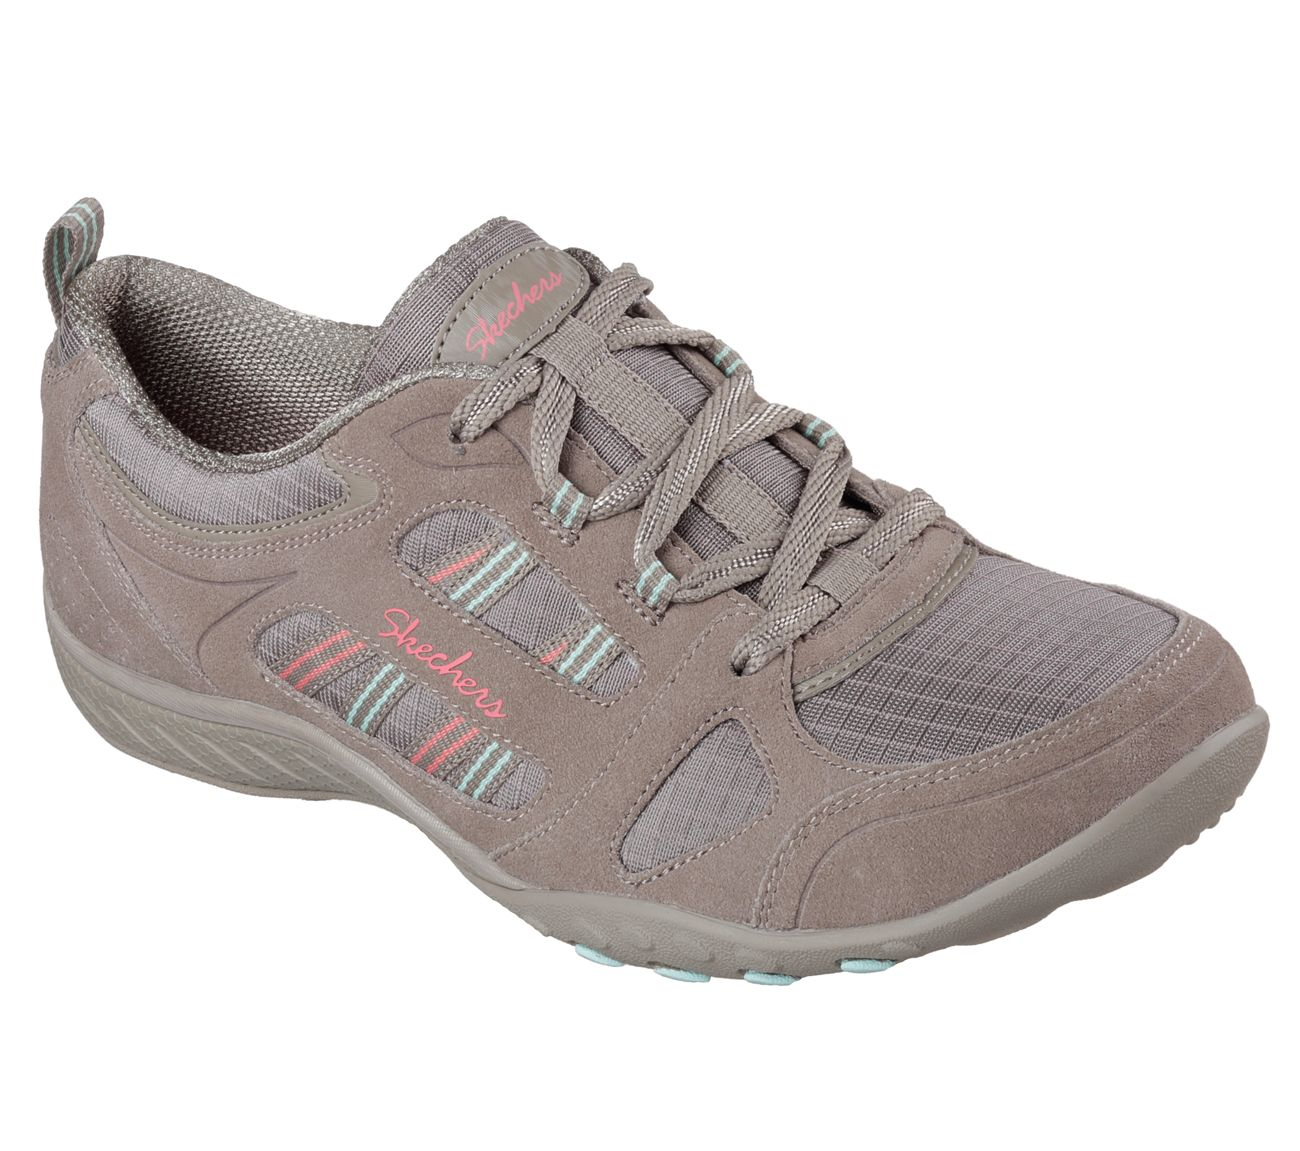 486b44a8a1d76 Buy SKECHERS Relaxed Fit  Breathe Easy - Good LuckActive Shoes only  60.00